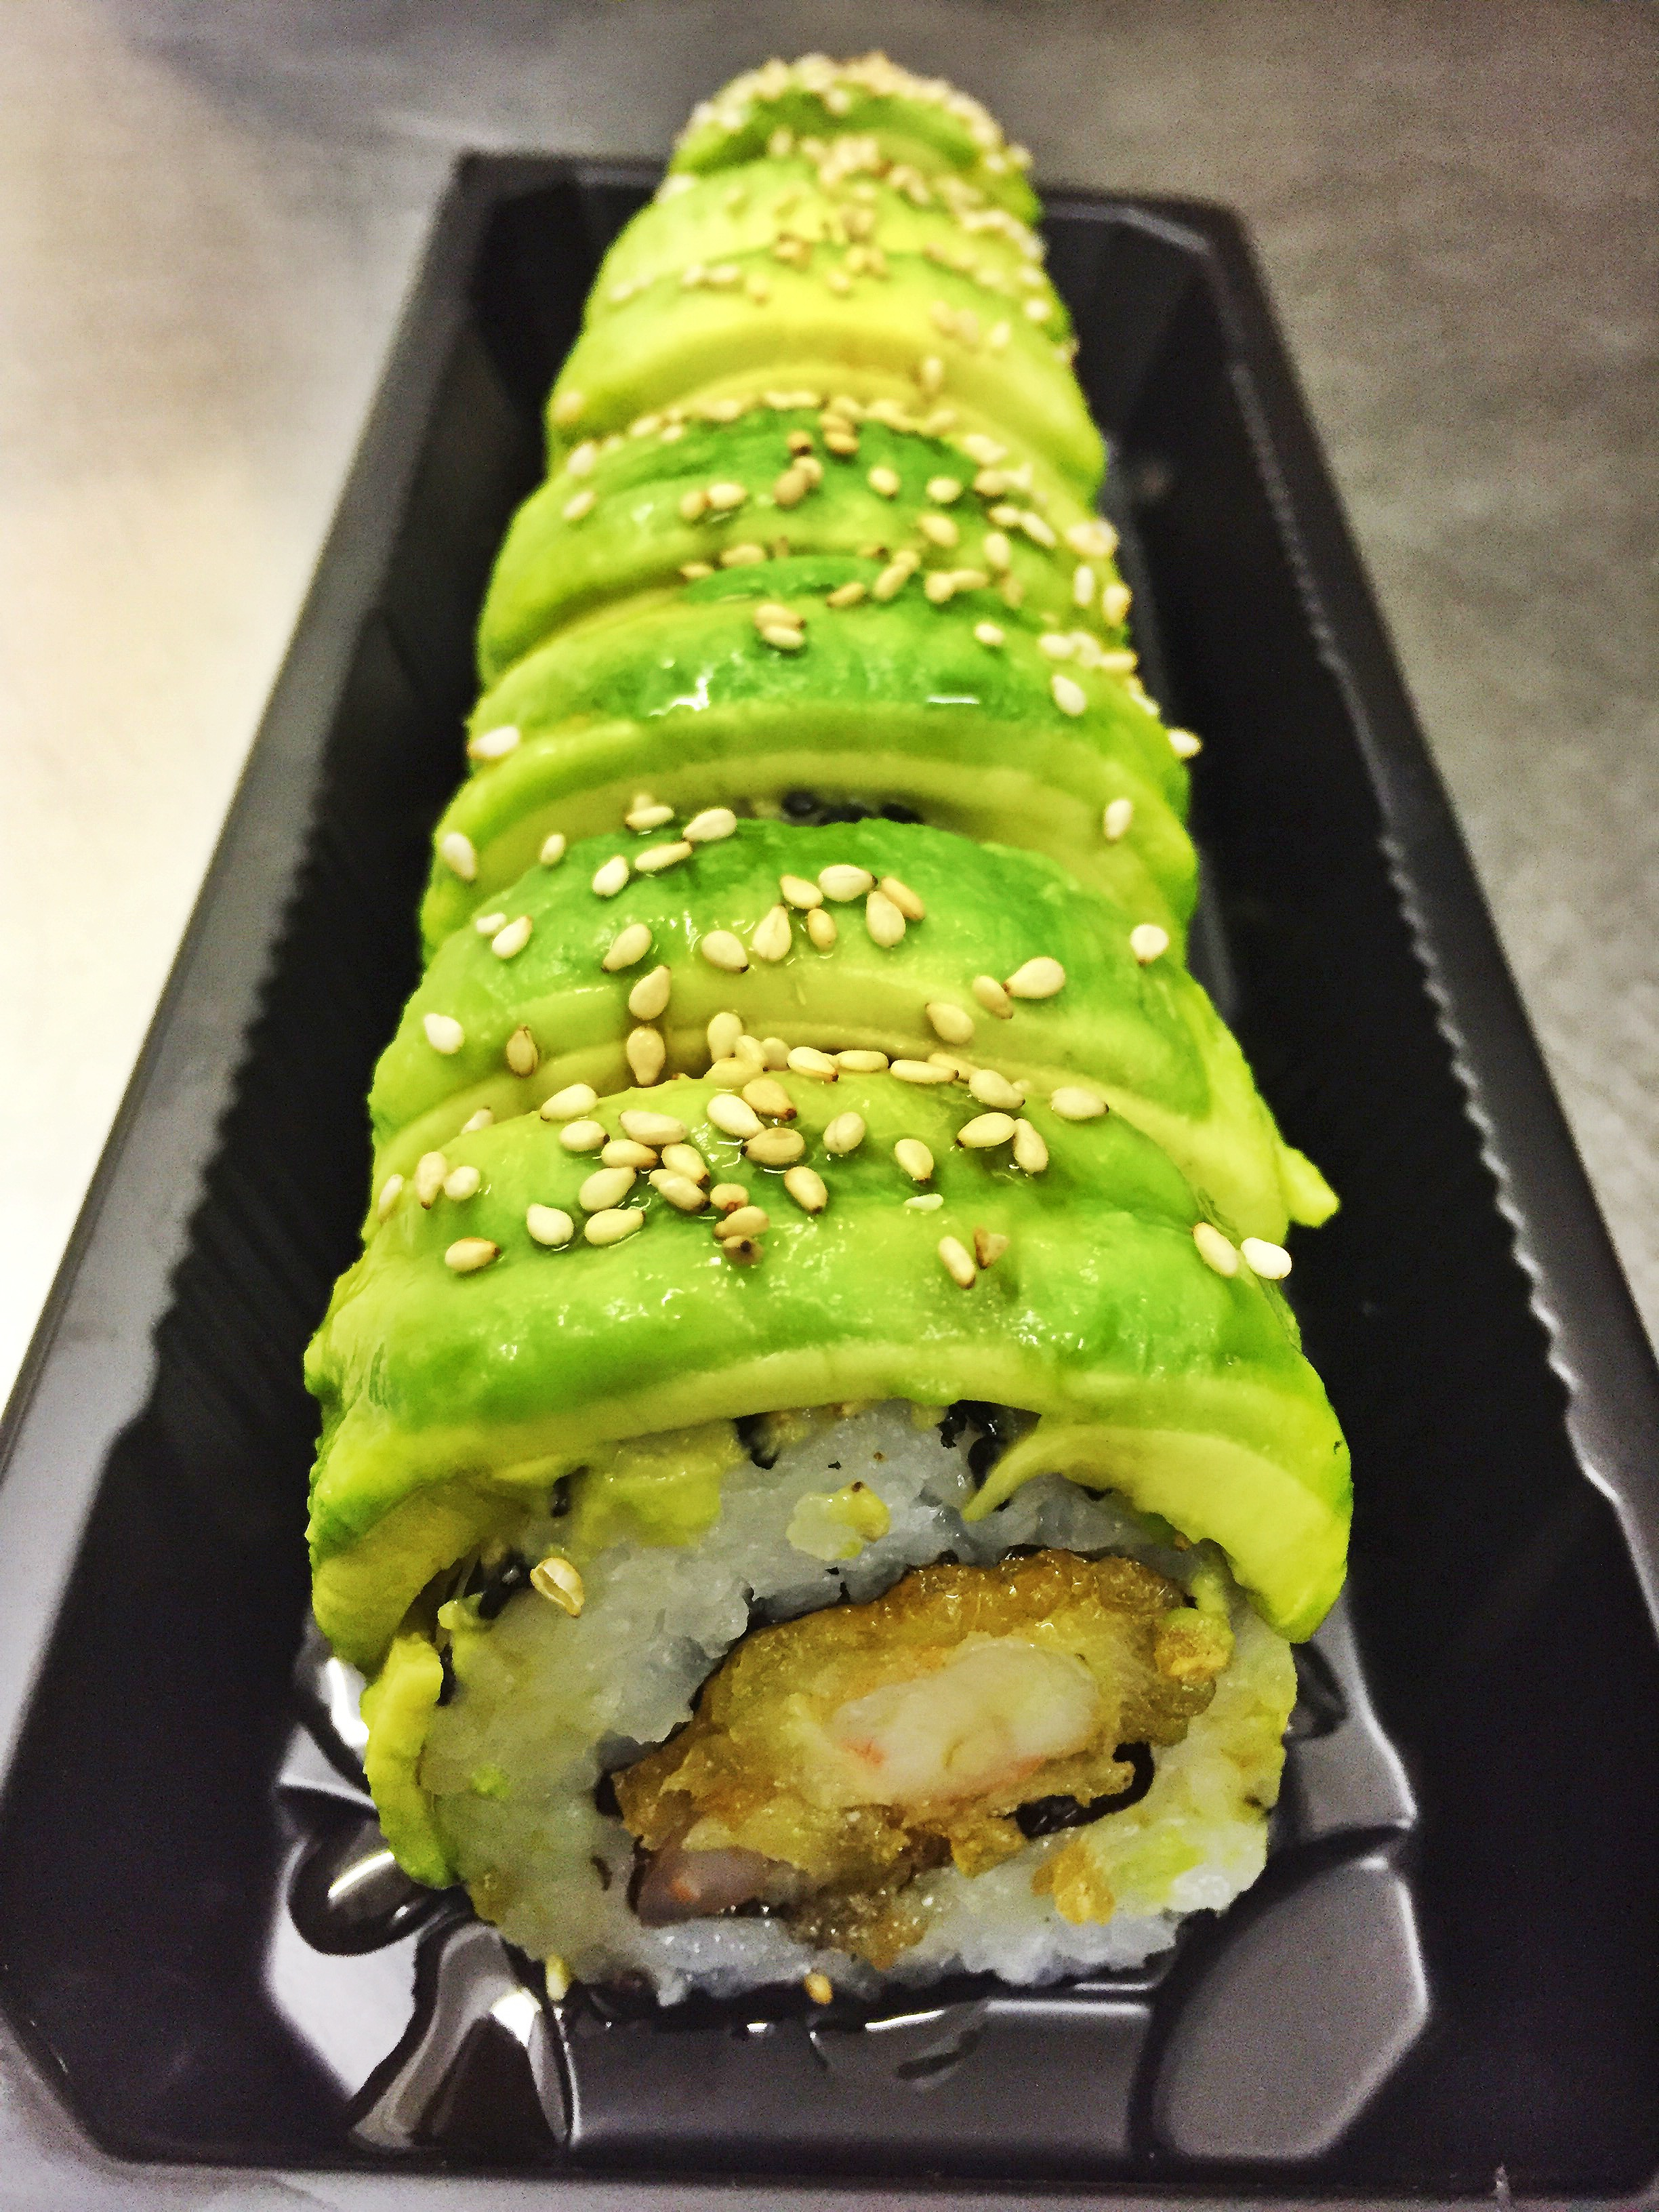 The Caterpillar Roll - £6.50  *contains gluten